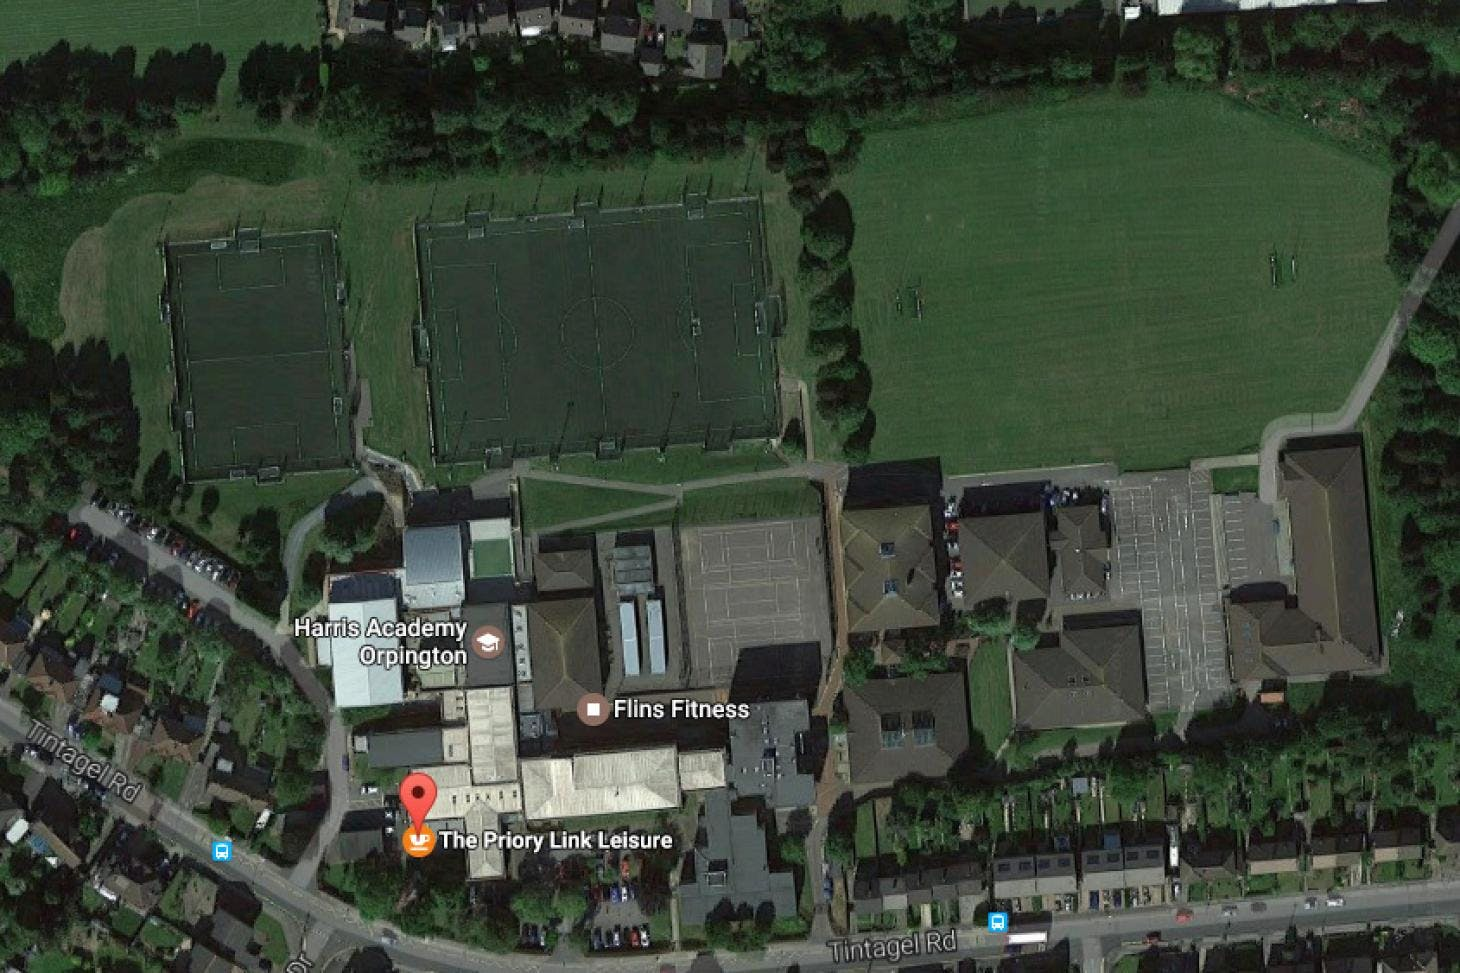 The Priory Link Leisure Centre 11 a side | Grass football pitch